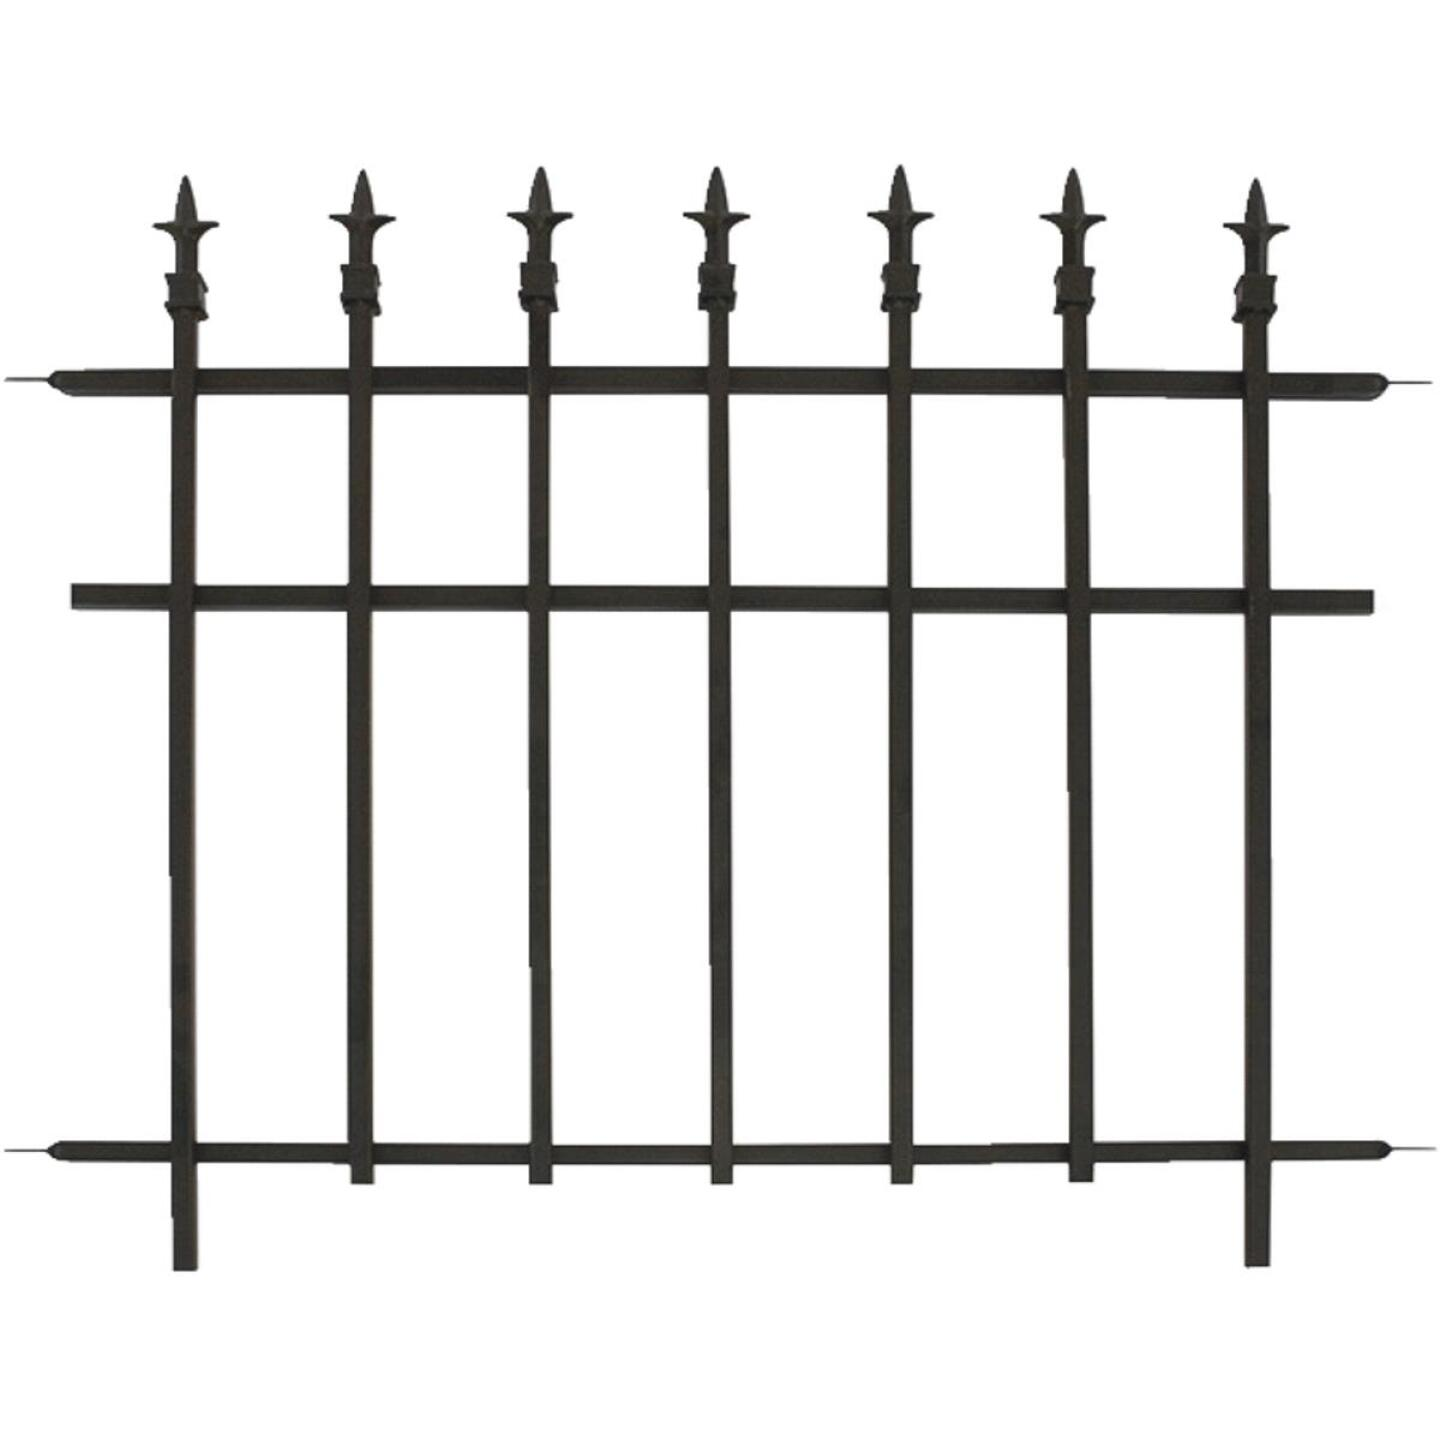 Panacea 30 In. H x 37 In. L Metal Decorative Border Fence Image 1